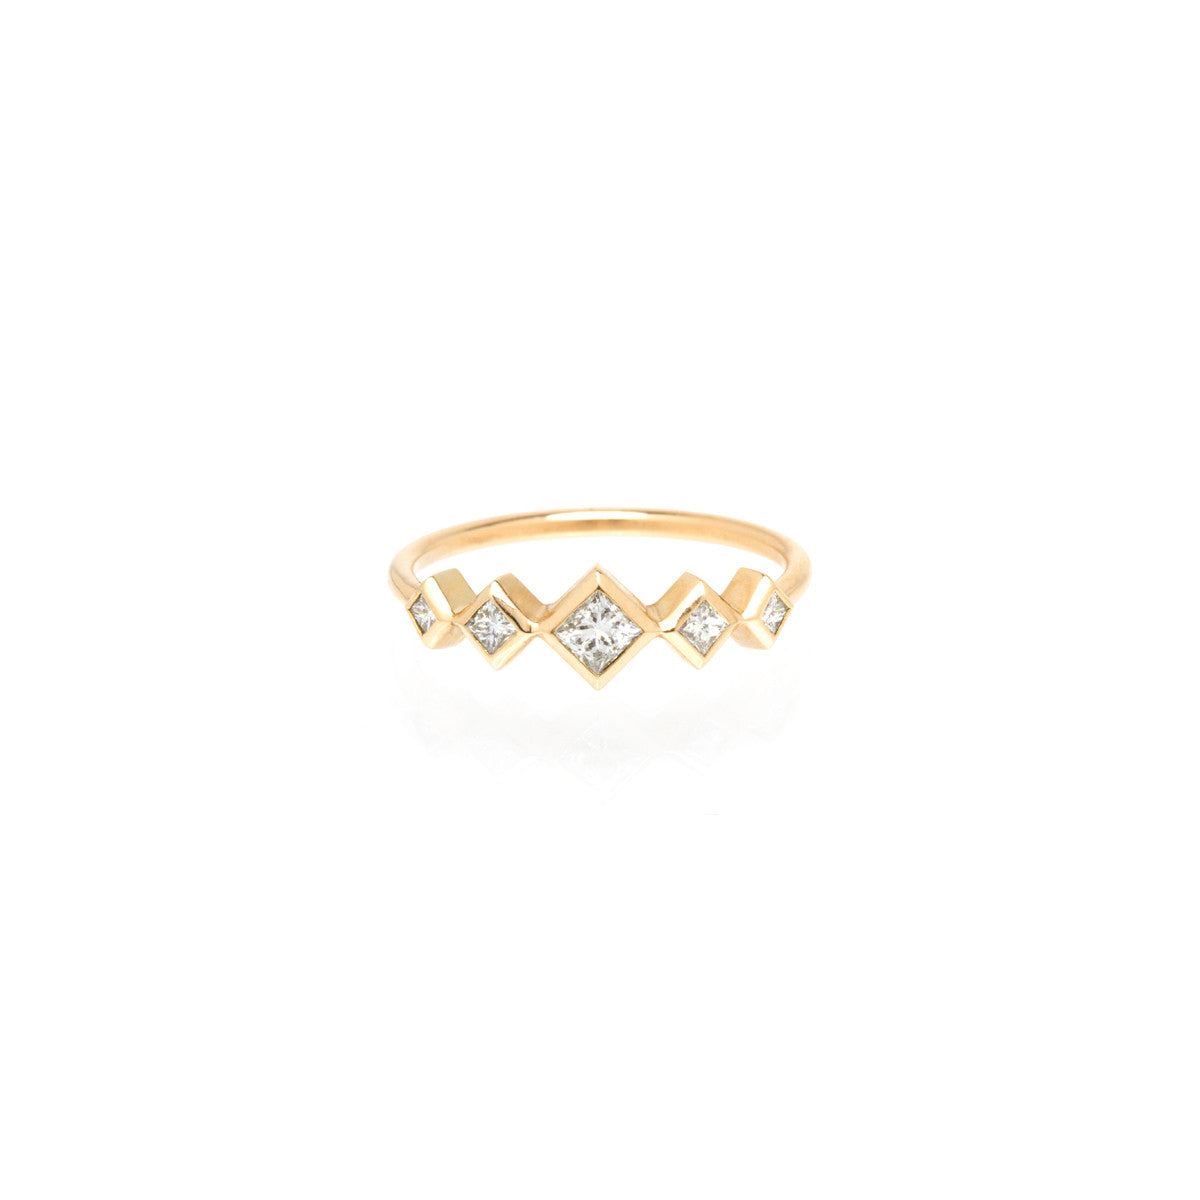 Zoë Chicco 14kt Yellow Gold Graduated Princess Diamond Ring